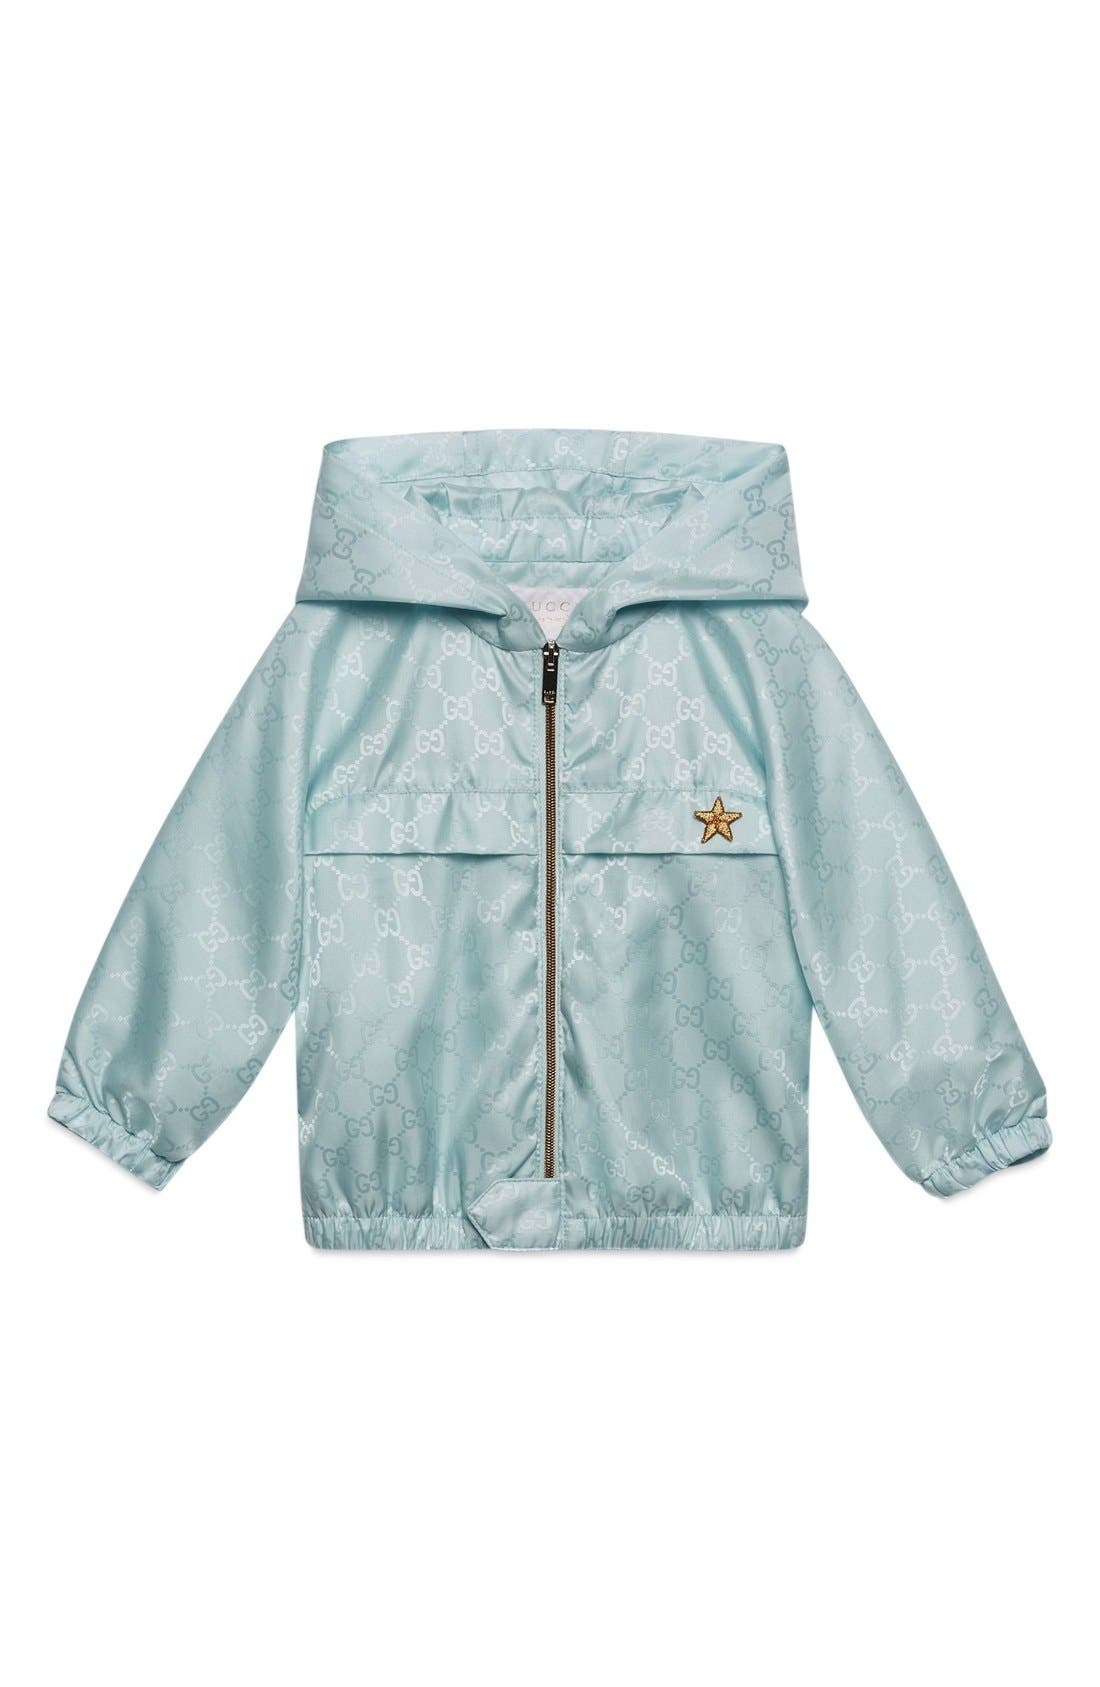 GUCCI Logo Jacquard Hooded Nylon Jacket